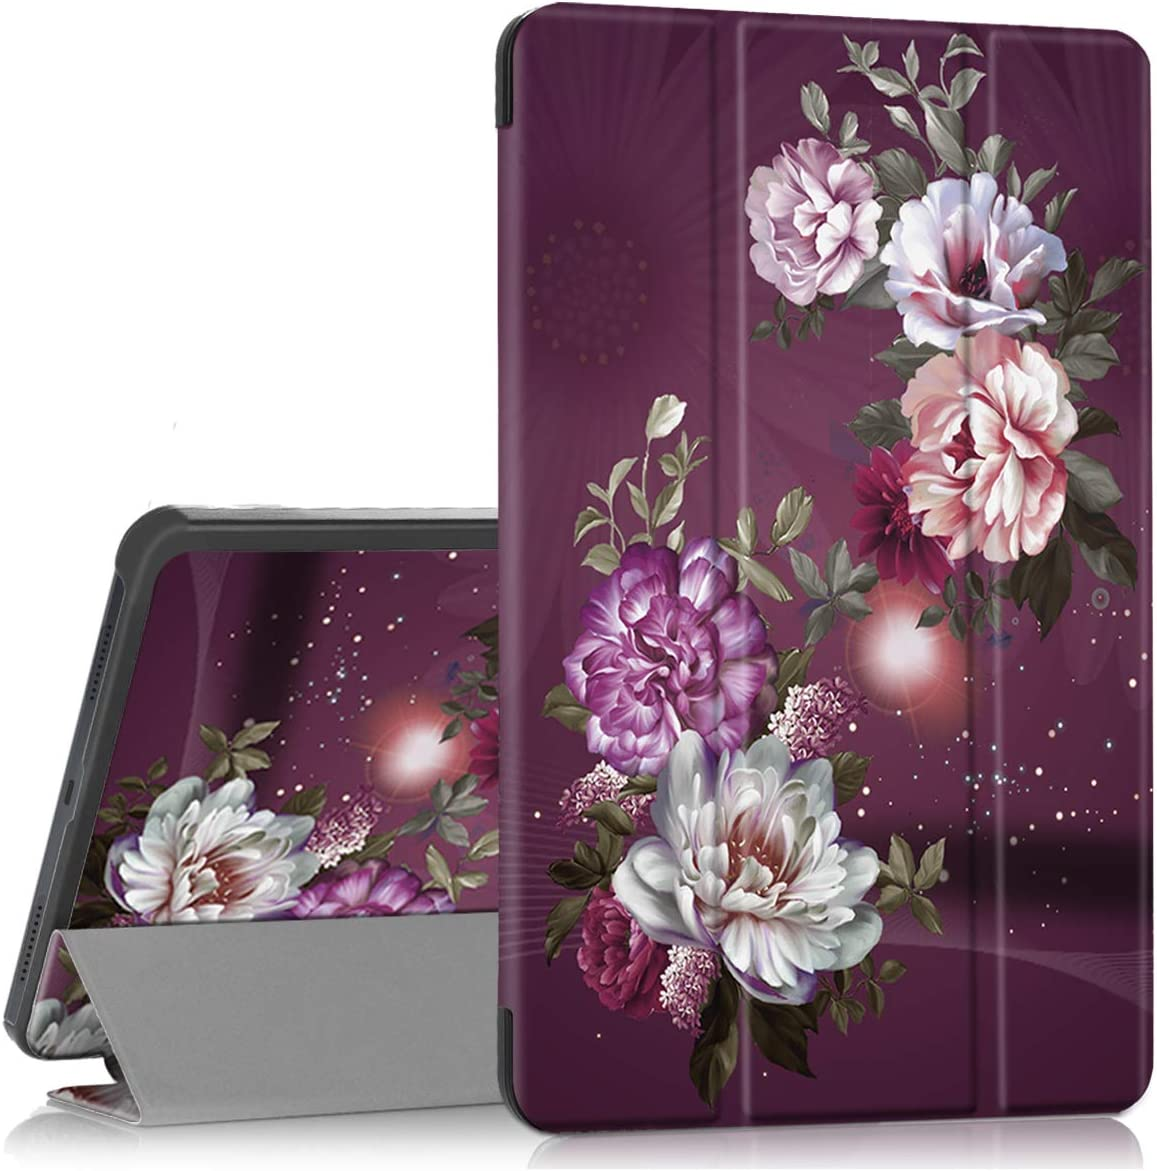 Hocase Galaxy Tab A 10.1 (2019) SM-T510/SM-T515 Case, PU Leather Case with Cute Flower Design, Tri-Fold Stand Feature, Hard Back Cover for Samsung Galaxy Tab A 10.1-Inch 2019 - Burgundy Flowers